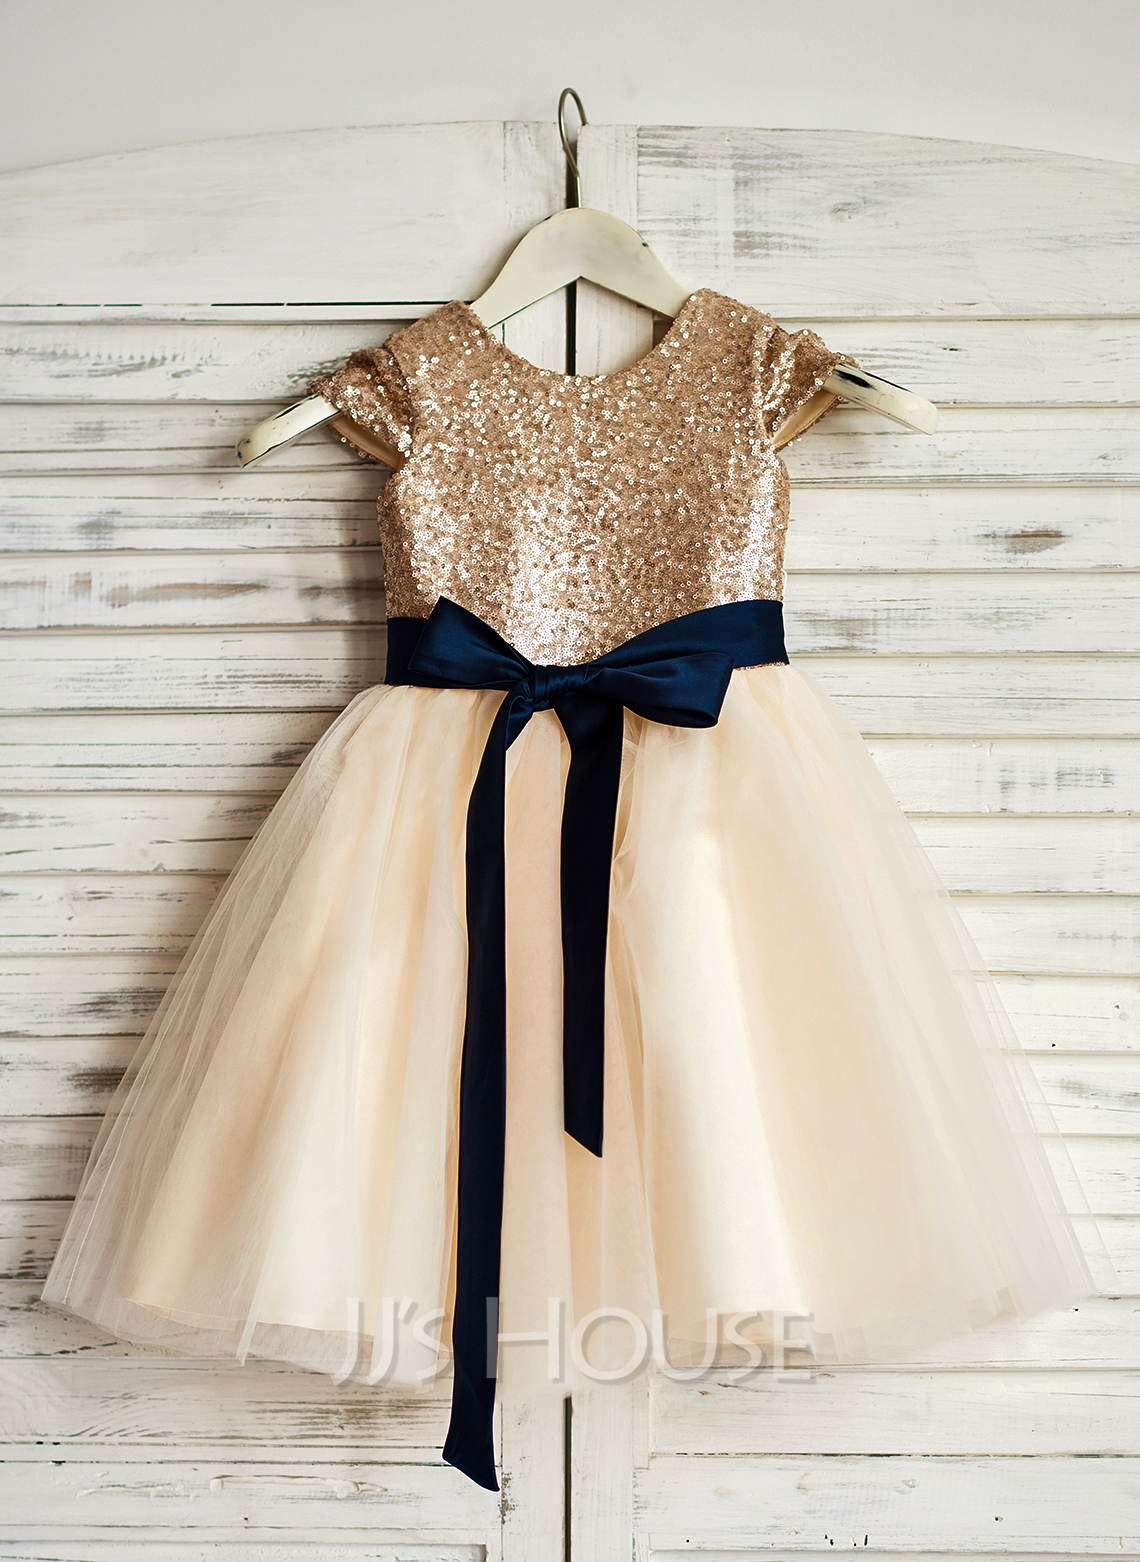 A-Line Scoop Neck Knee-Length Tulle Junior Bridesmaid Dress With Sash